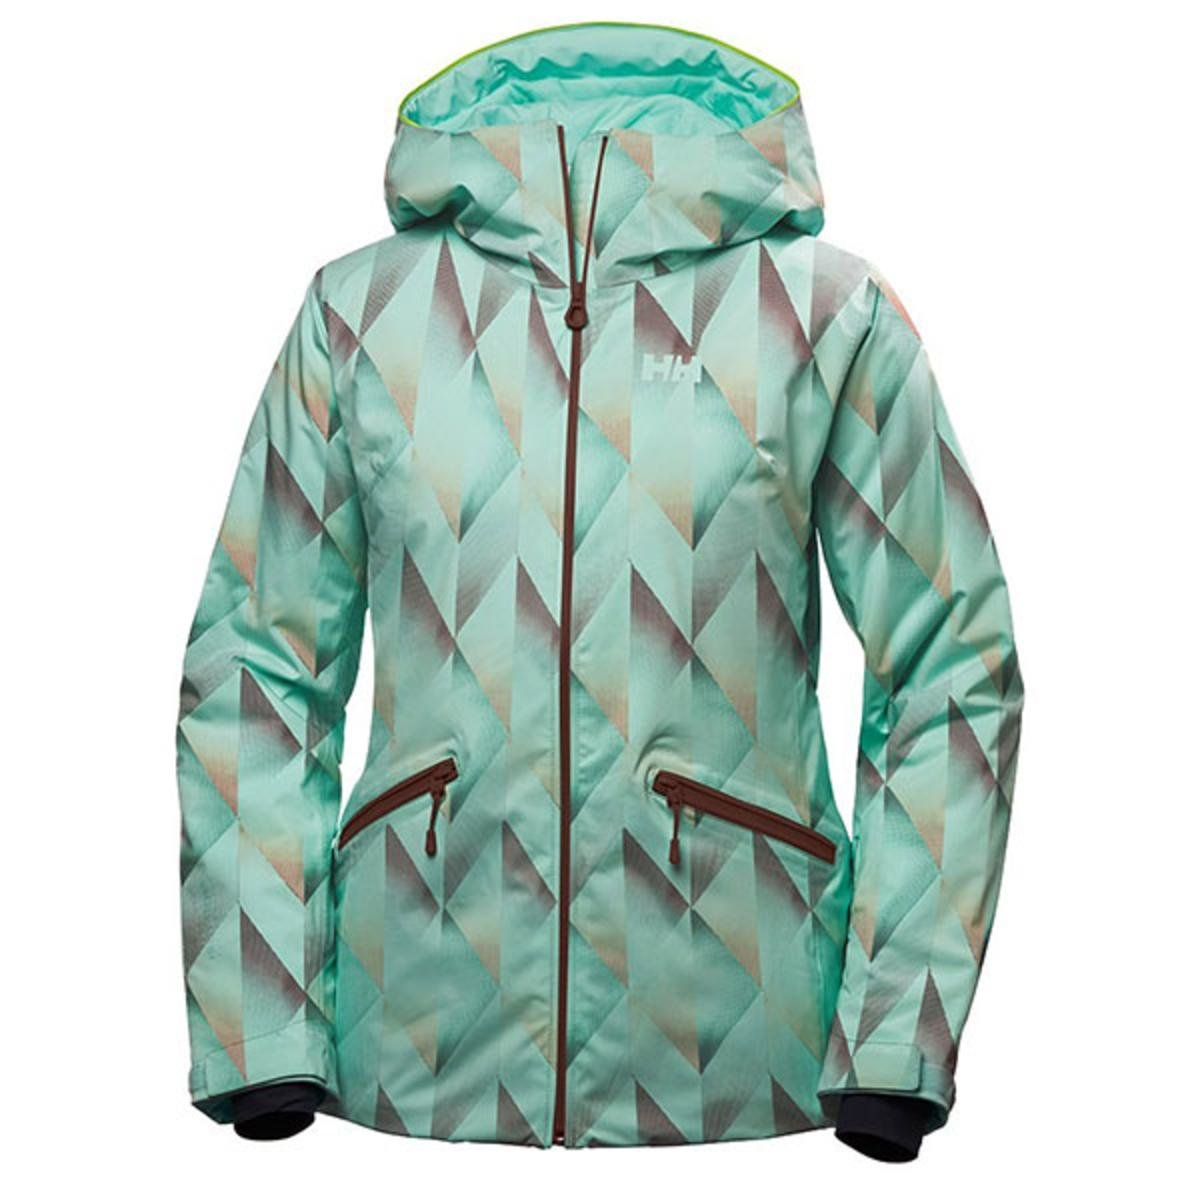 c3b7de3a5bd Helly Hansen Women s Belle Printed Jacket - The Warming Store